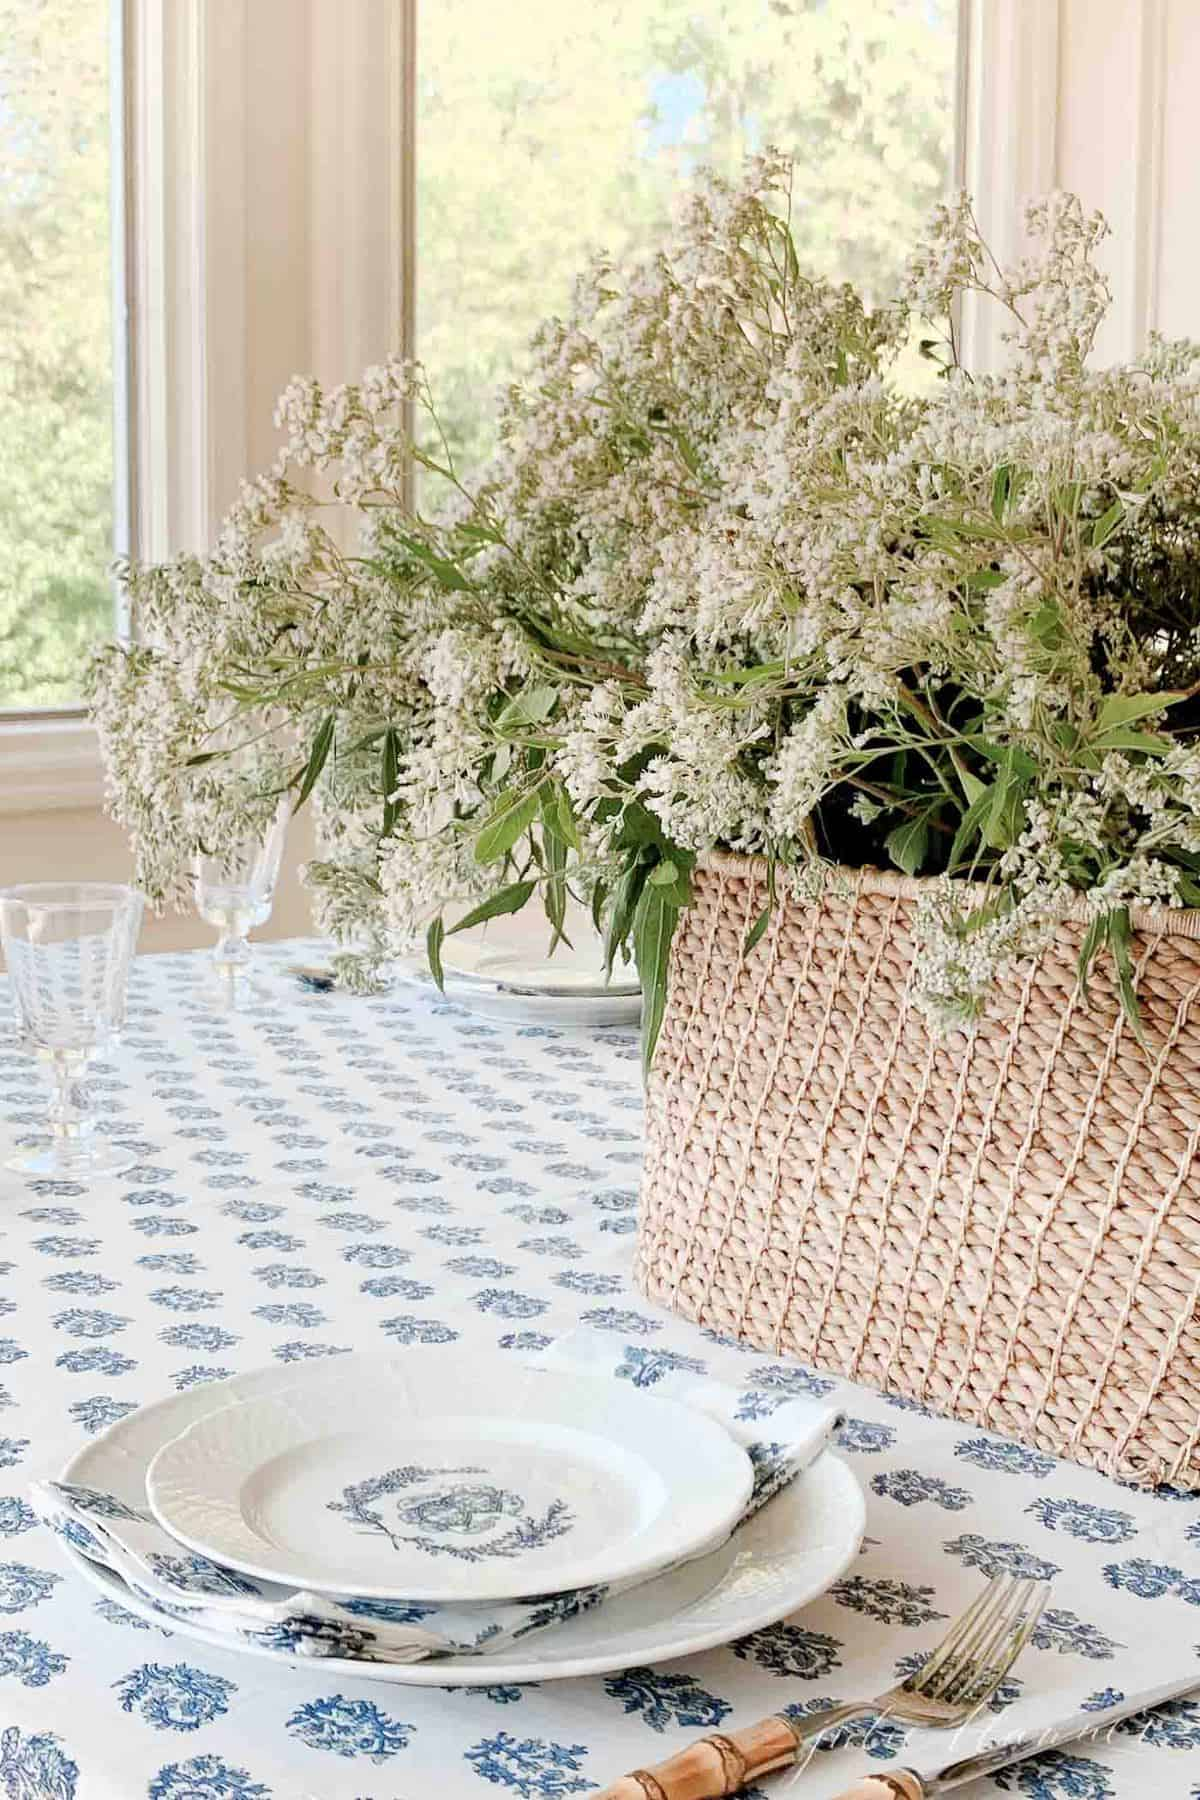 wildflowers in a basket on a kalamakari block print table cloth